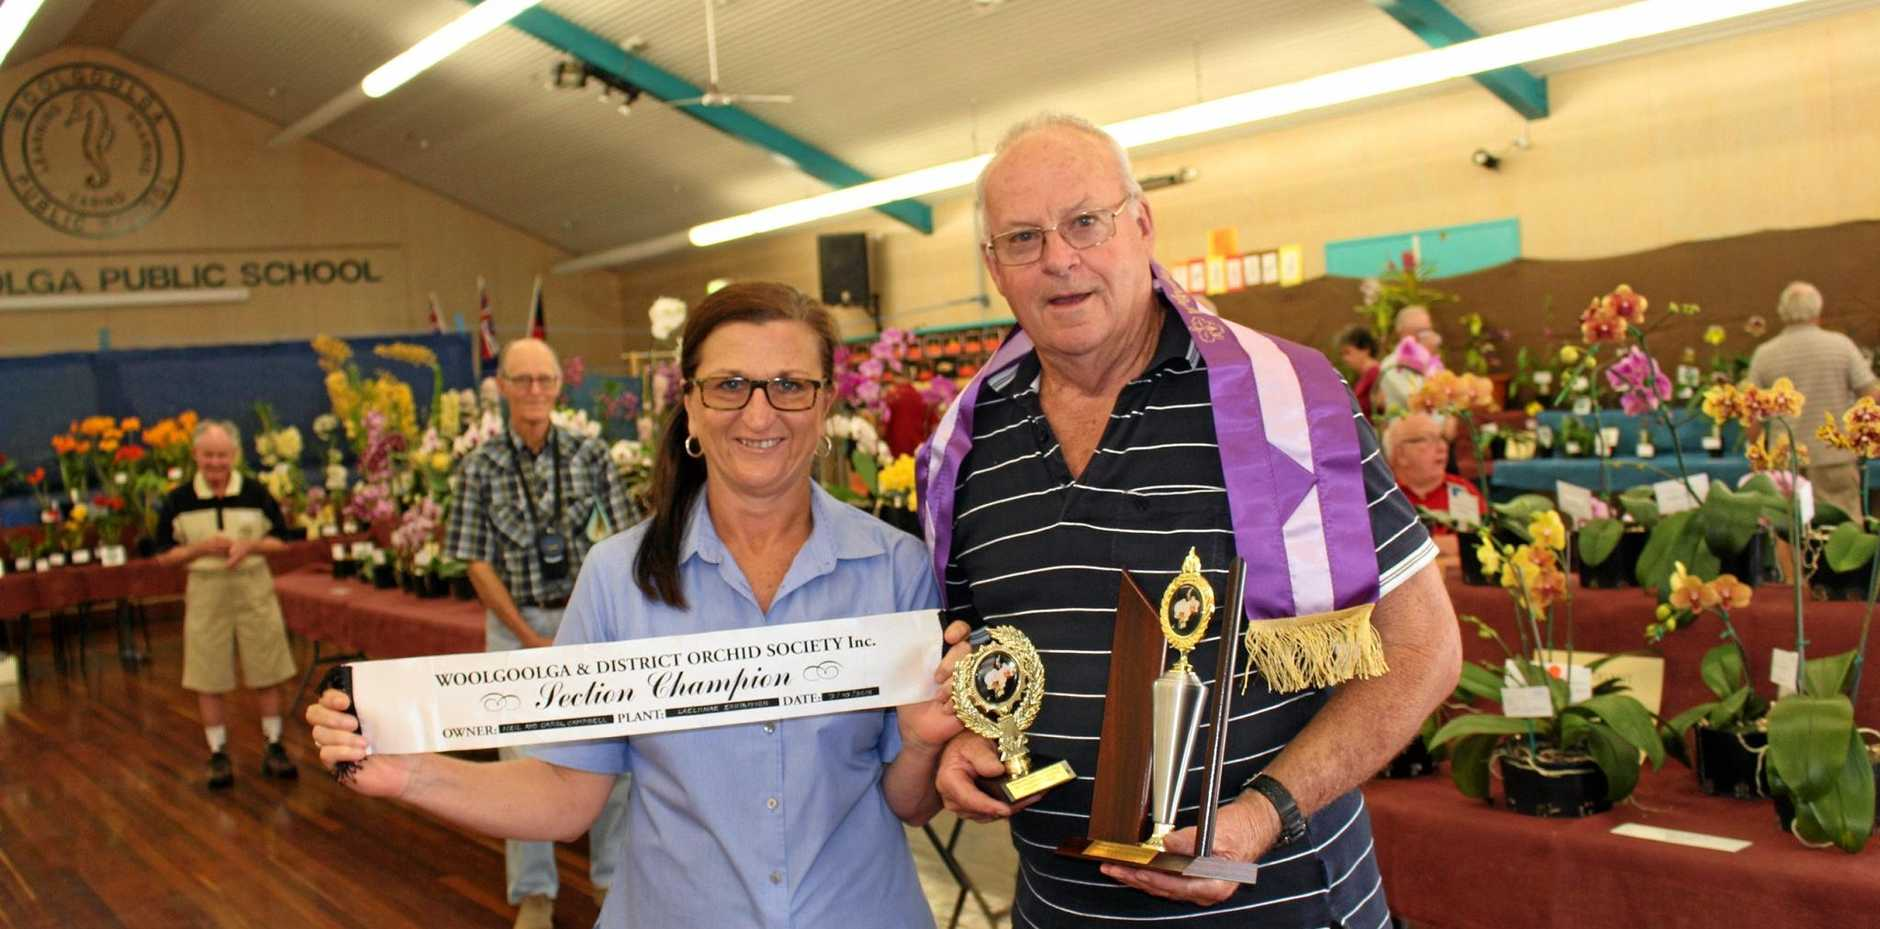 BEST IN SHOW: Last year's Grand Champion Orchid winner Neil Campbell is awarded the trophy by bcu Woolgoolga and Northside branch manager, Karen Mills.